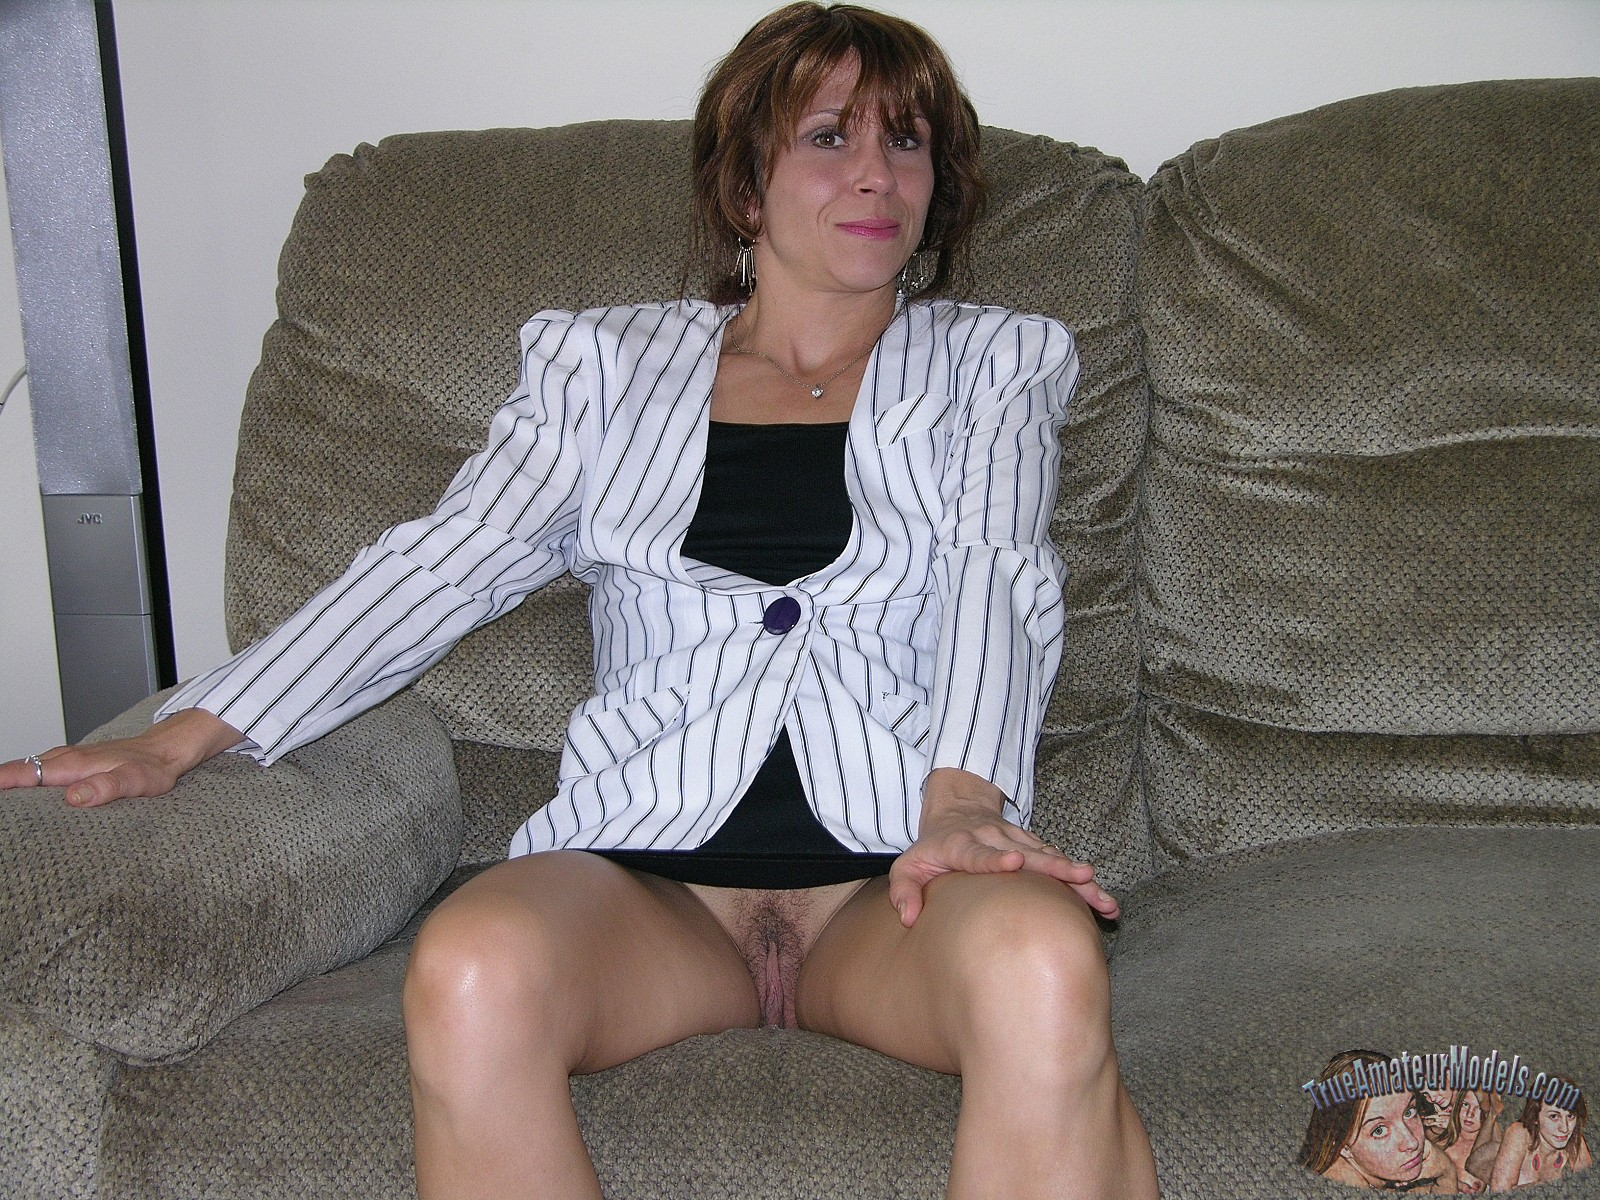 very much would porno xx leonora meleti like topic Certainly. And